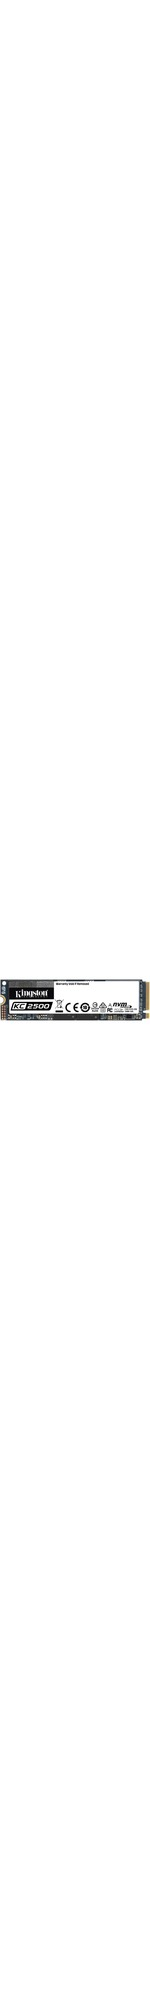 Kingston KC2500 250 GB Solid State Drive - M.2 2280 Internal - PCI Express NVMe PCI Express NVMe 3.0 x4 - Desktop PC, Workstation Device Supported - 150 TB TBW - 3